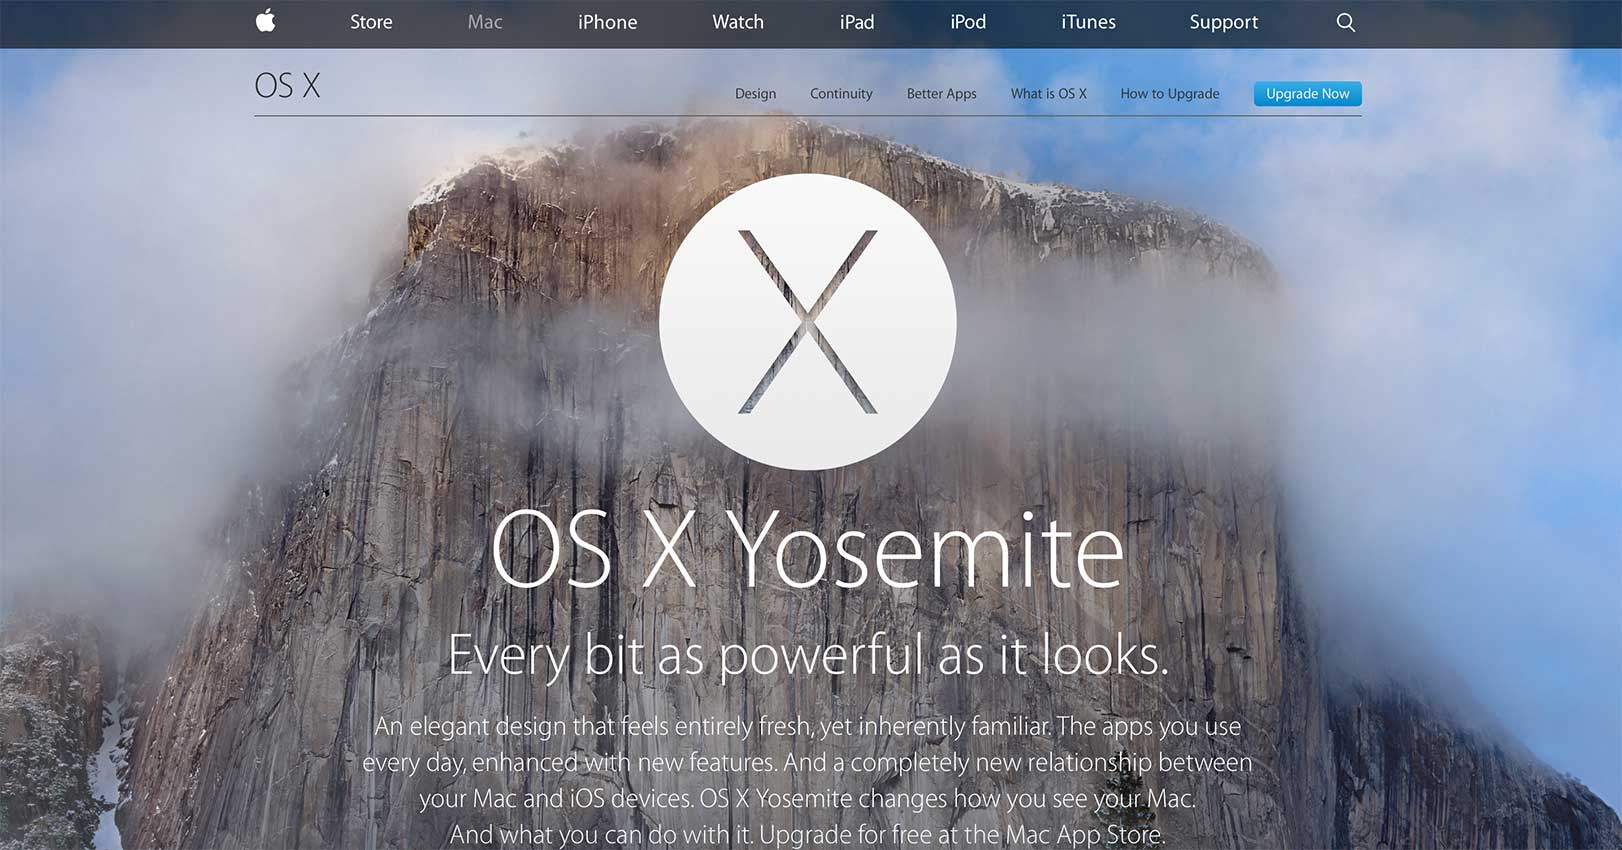 OS-X-Yosemite-Upgrade